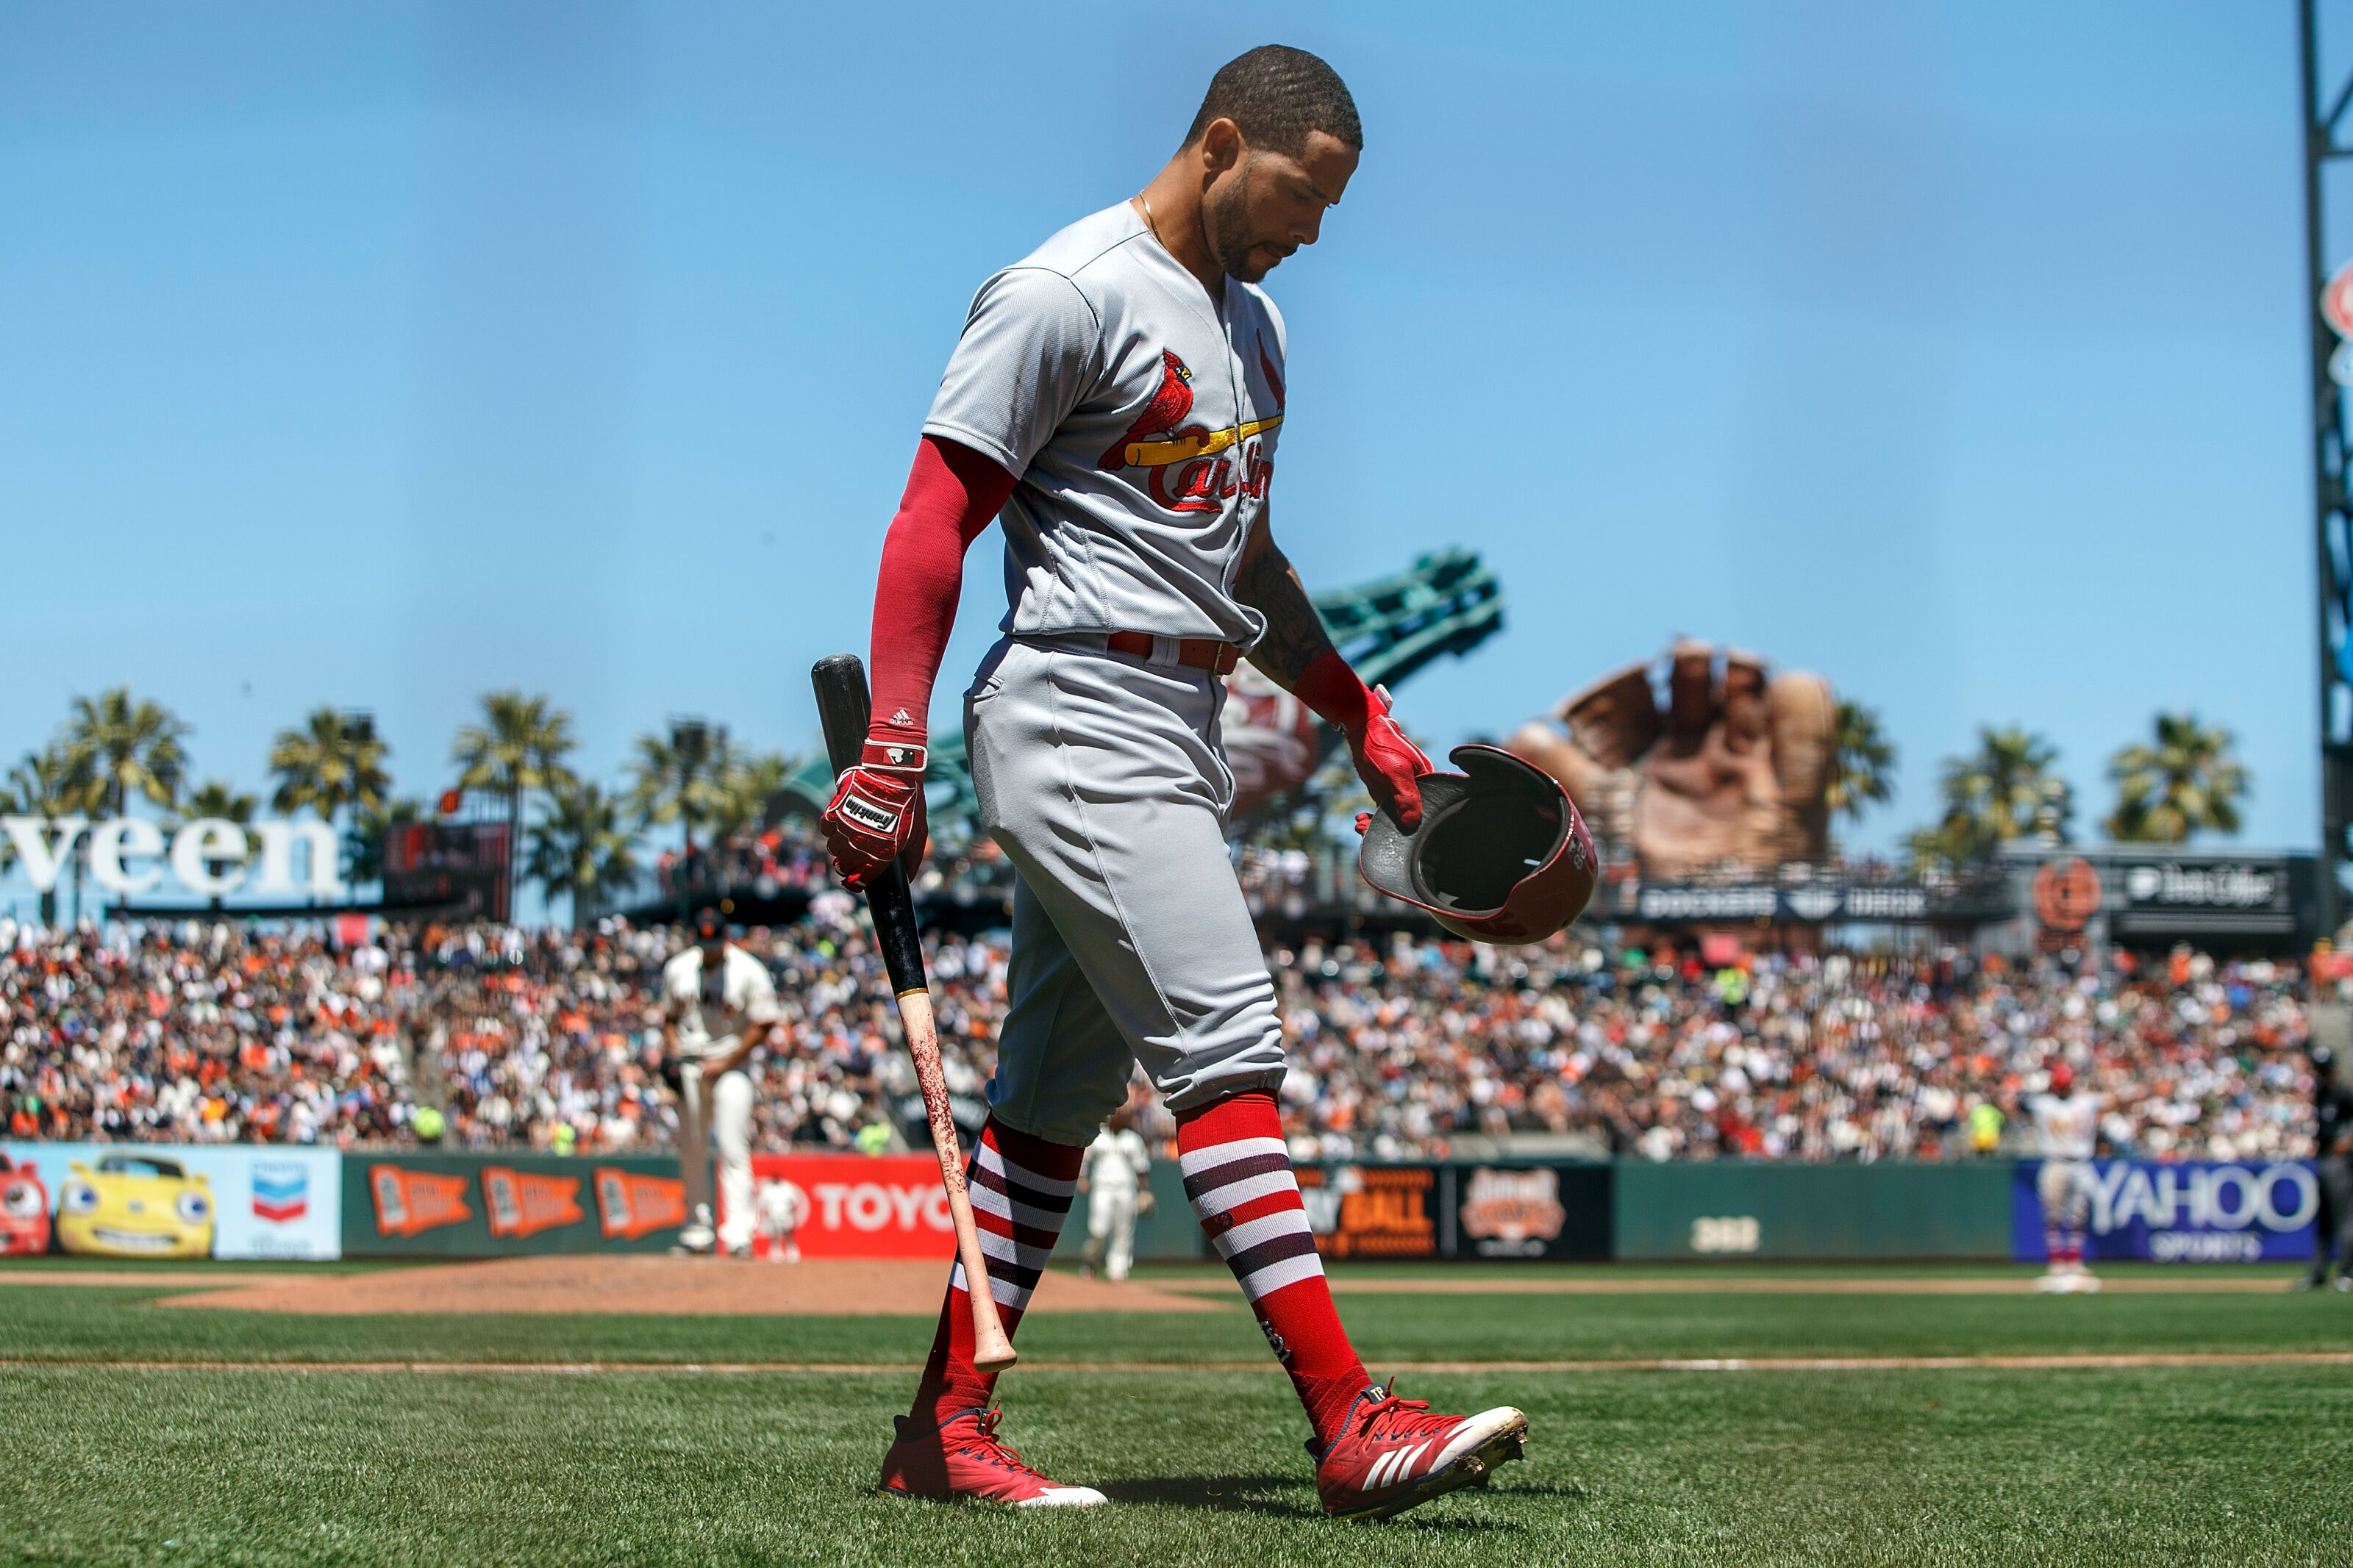 St. Louis Cardinals: Checking up on Tommy Pham